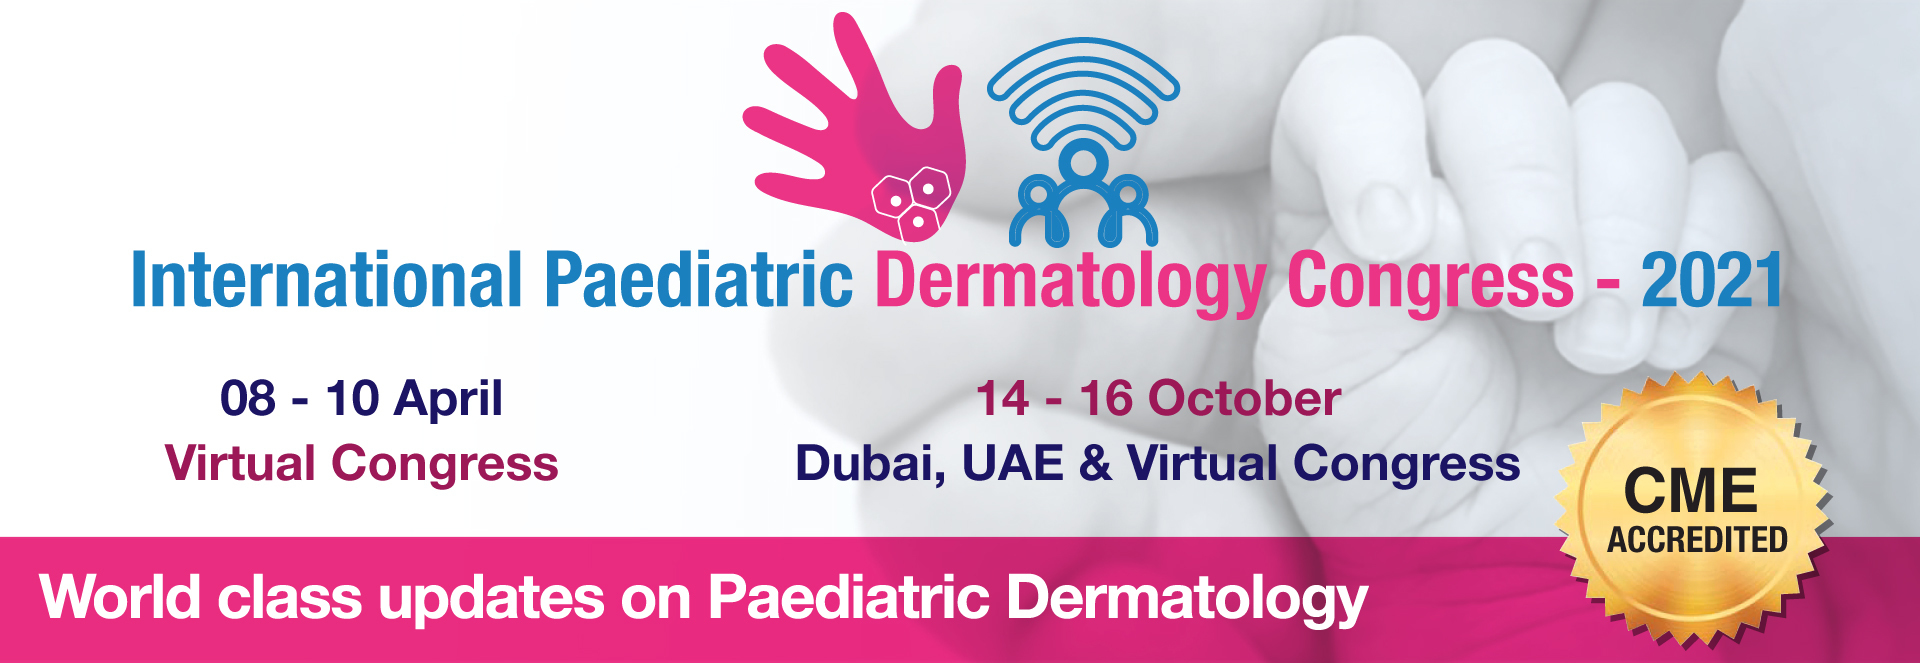 The Congress provides 3 days of robust discussions on the most effective strategies related to diagnosis, prevention & management of common paedia dermatological conditions, & more.